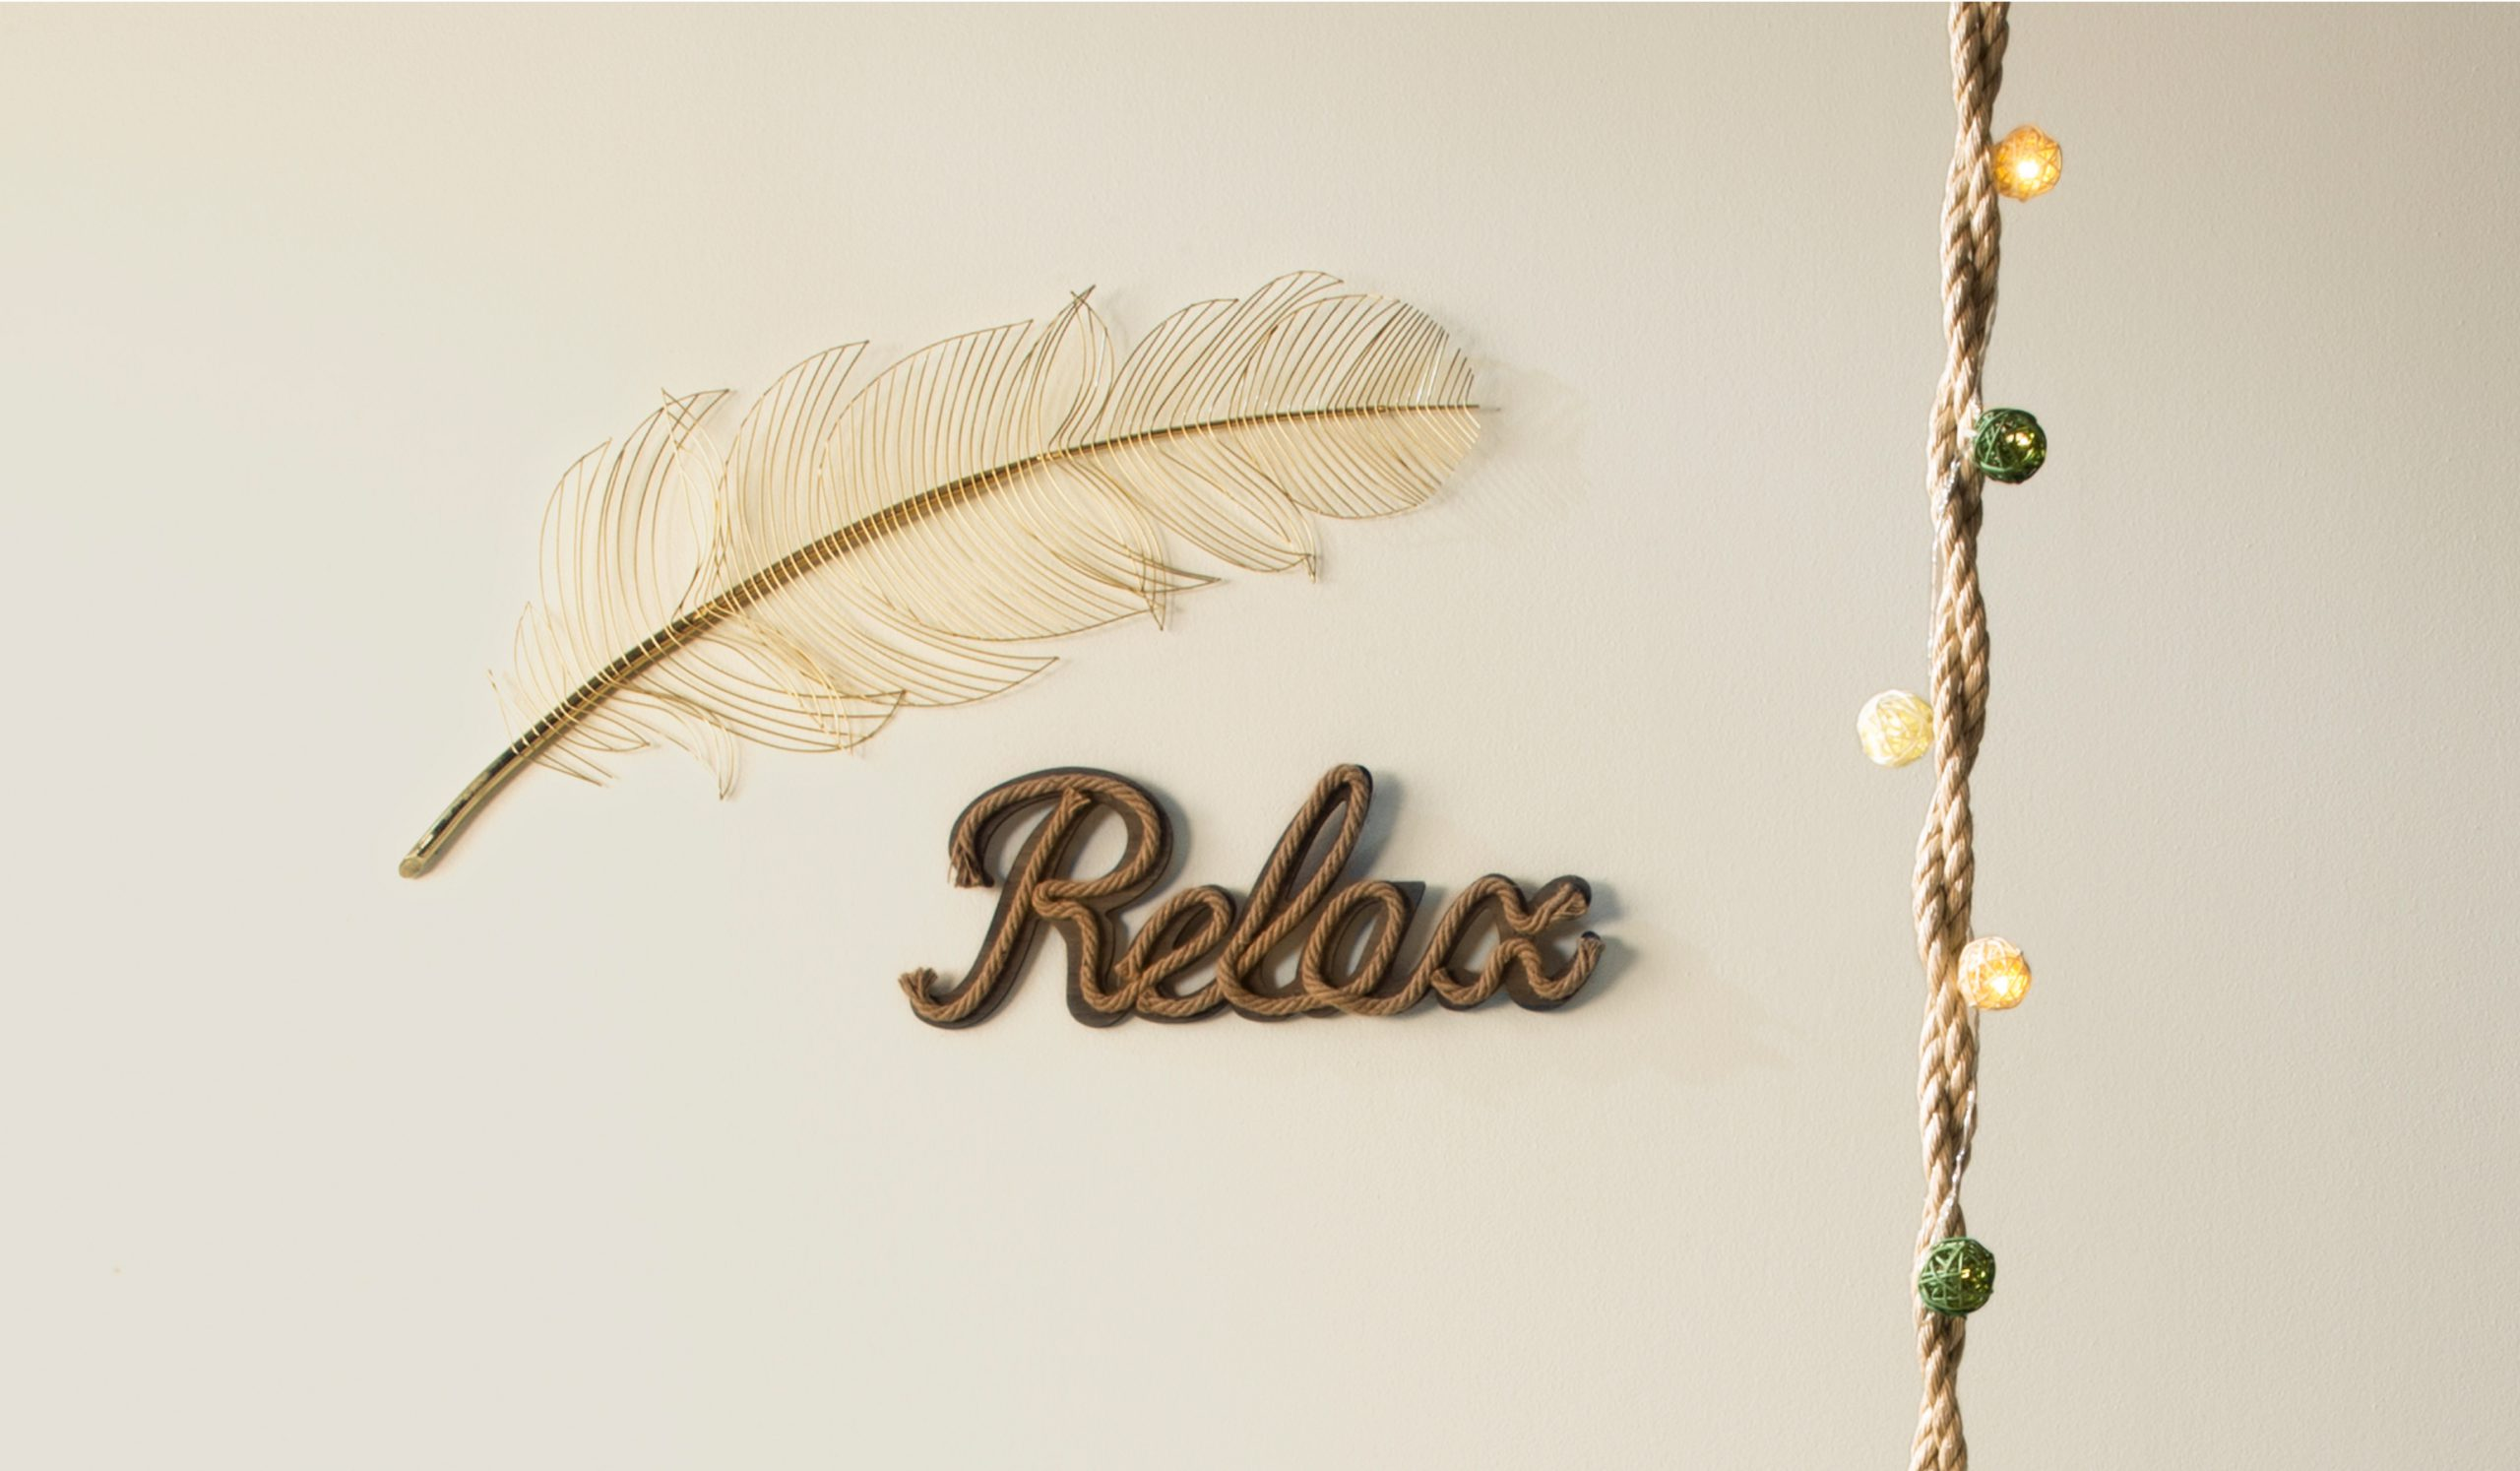 A tight crop of the wall showing a wire feather and a sign made from rope in the word relax. In the foreground you see the rope of the swing with yellow and green light balls wrapped around the rope.